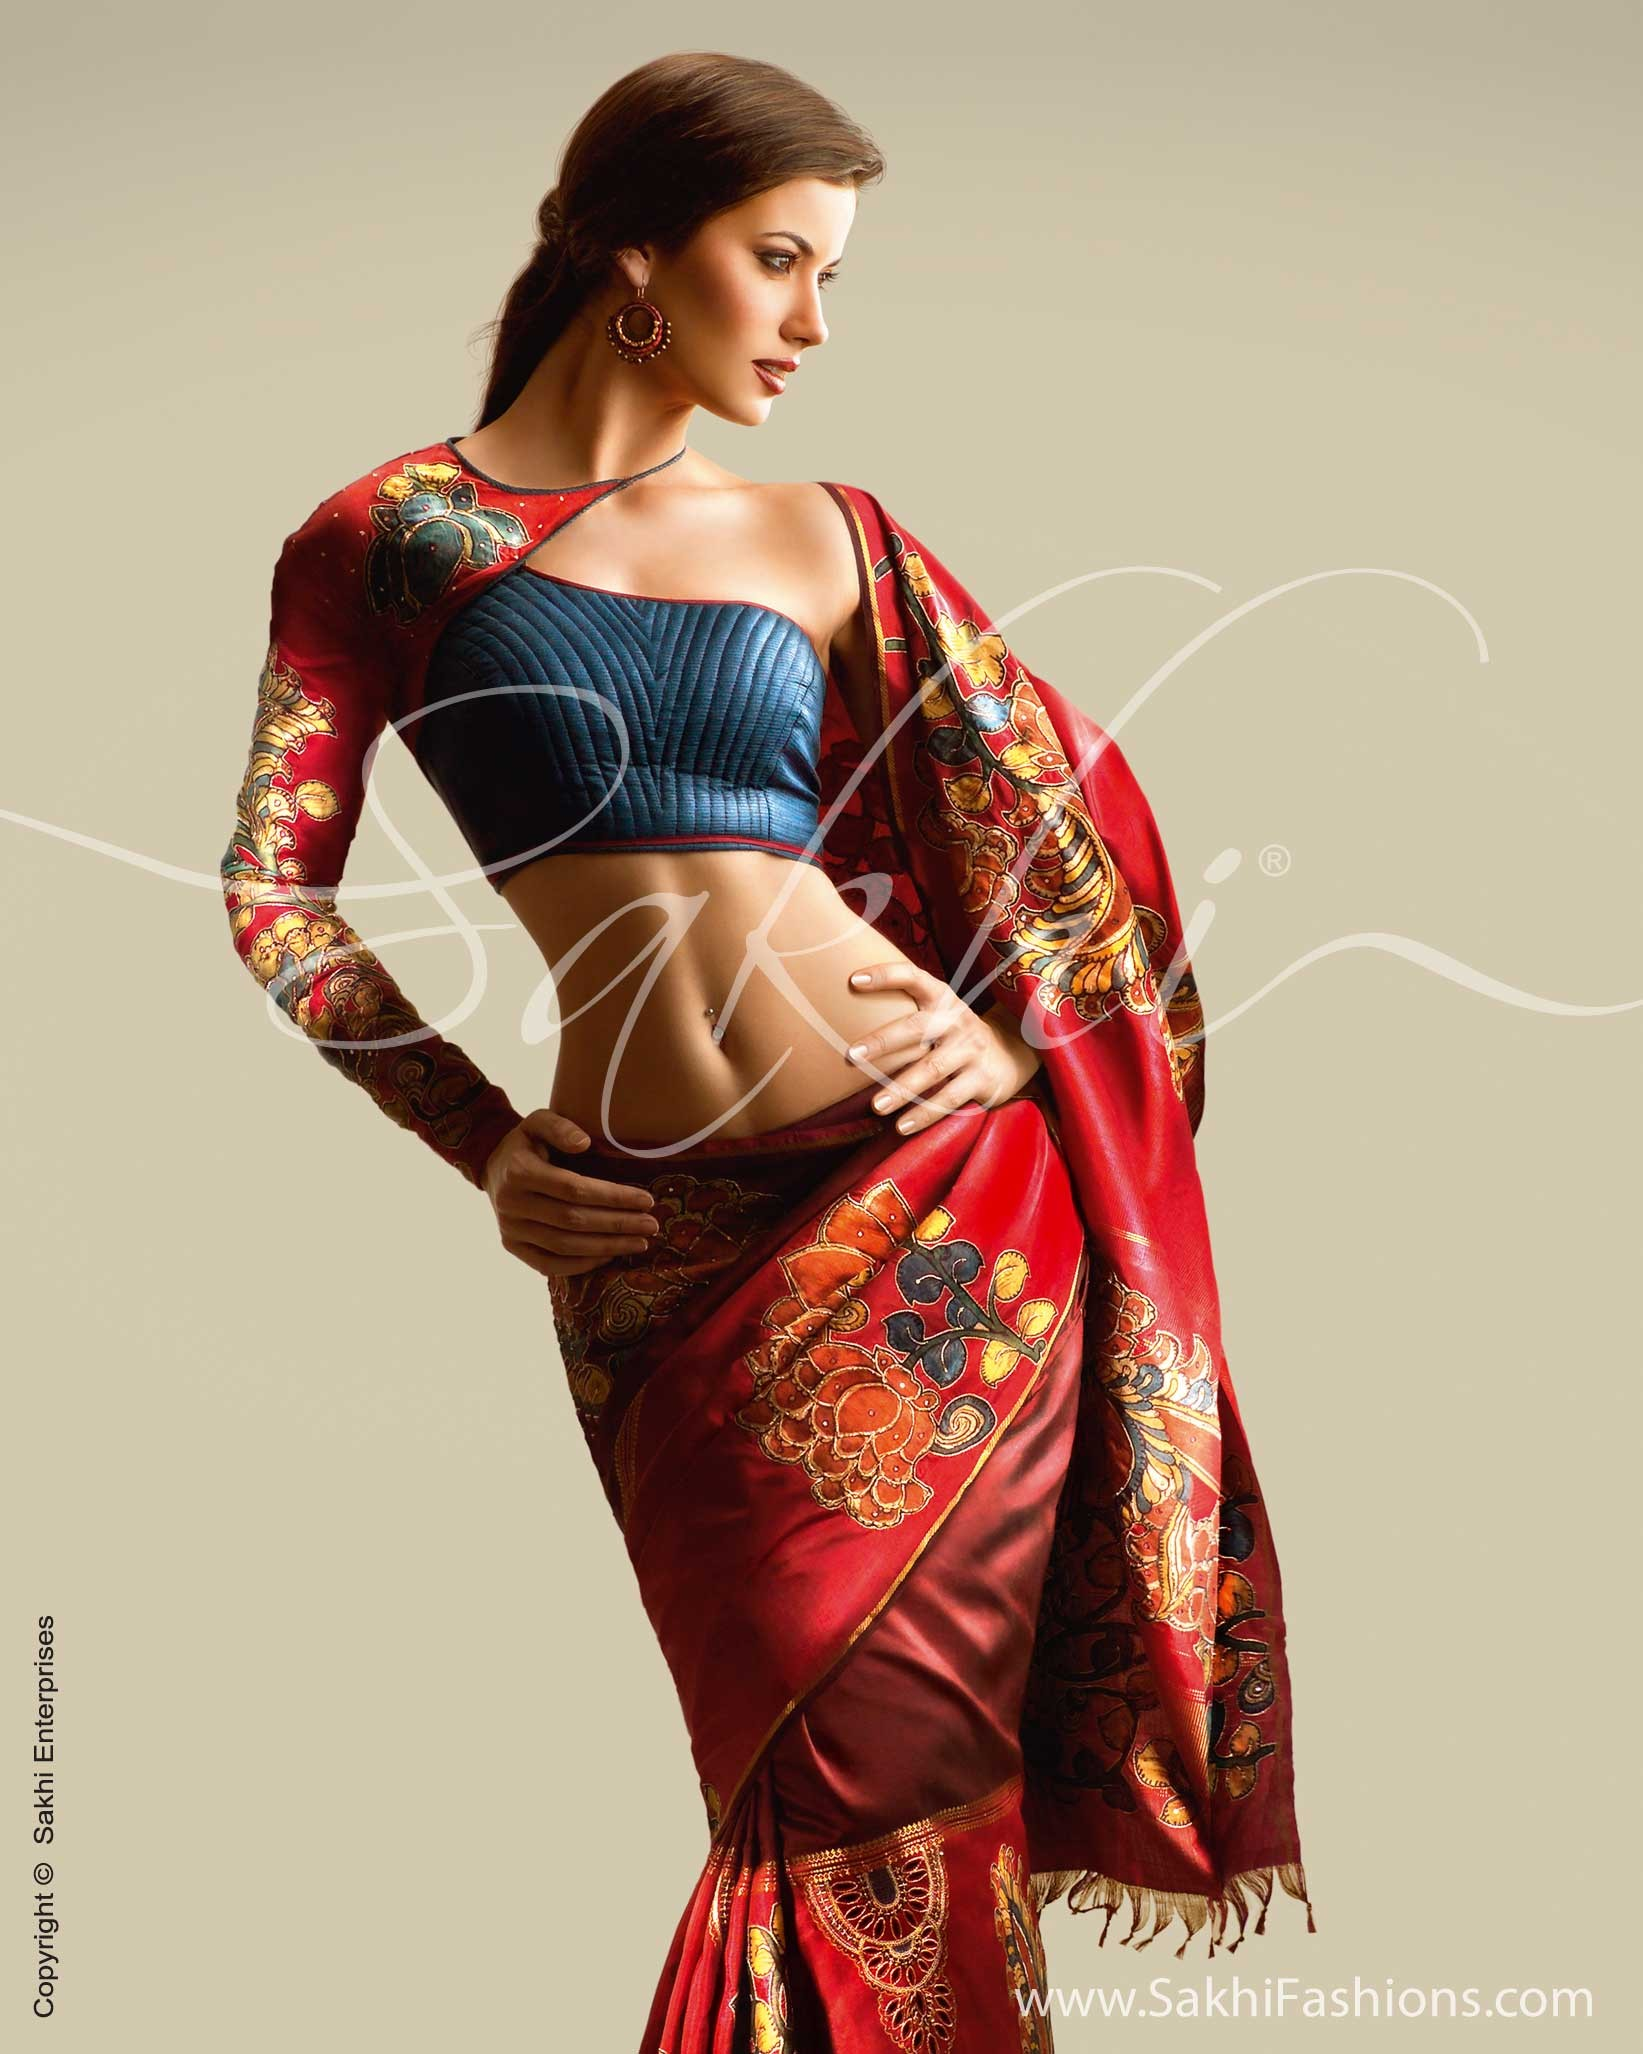 Saree across time and space